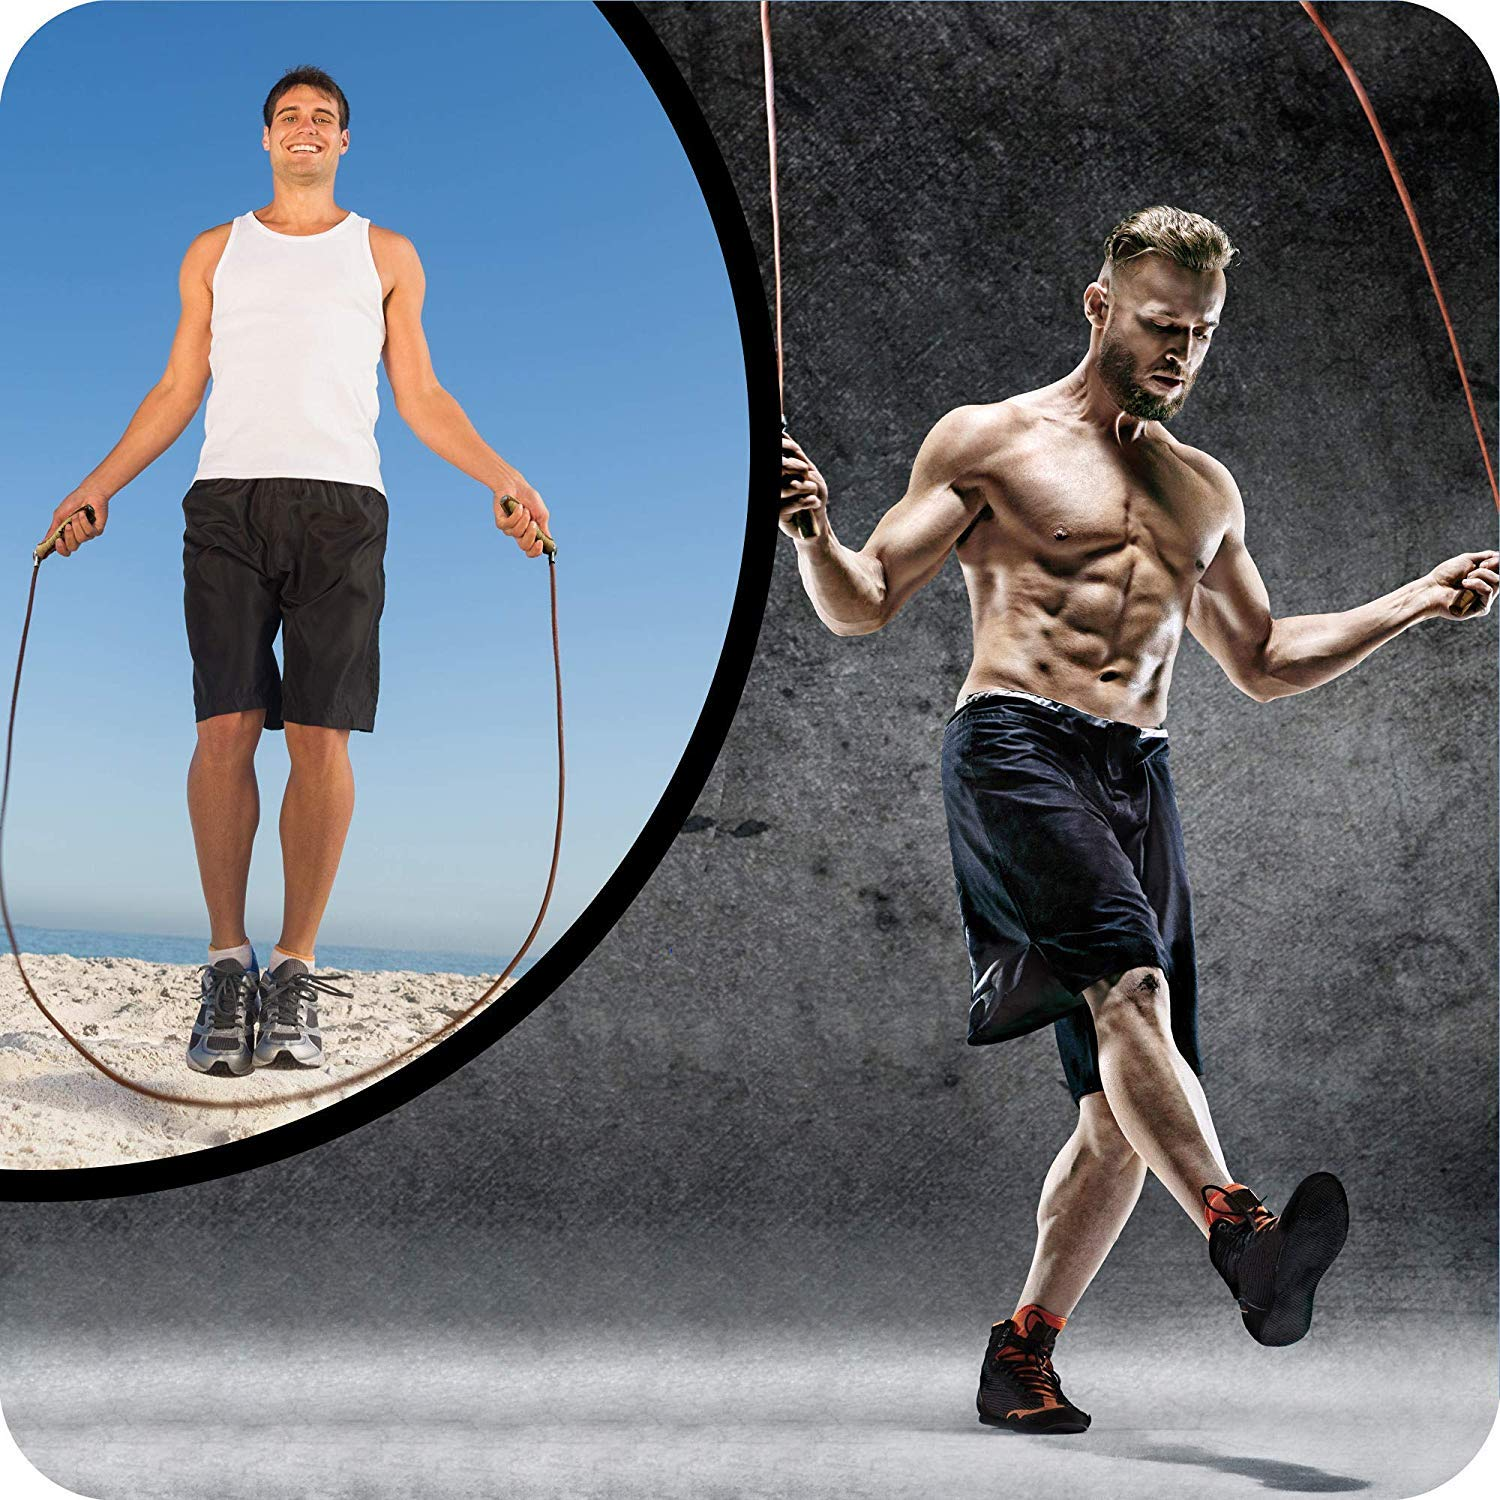 MEISTER PRO SWIVEL SPEED ROPE WEIGHTED Leather Wood Jumping Skipping ADJUSTABLE